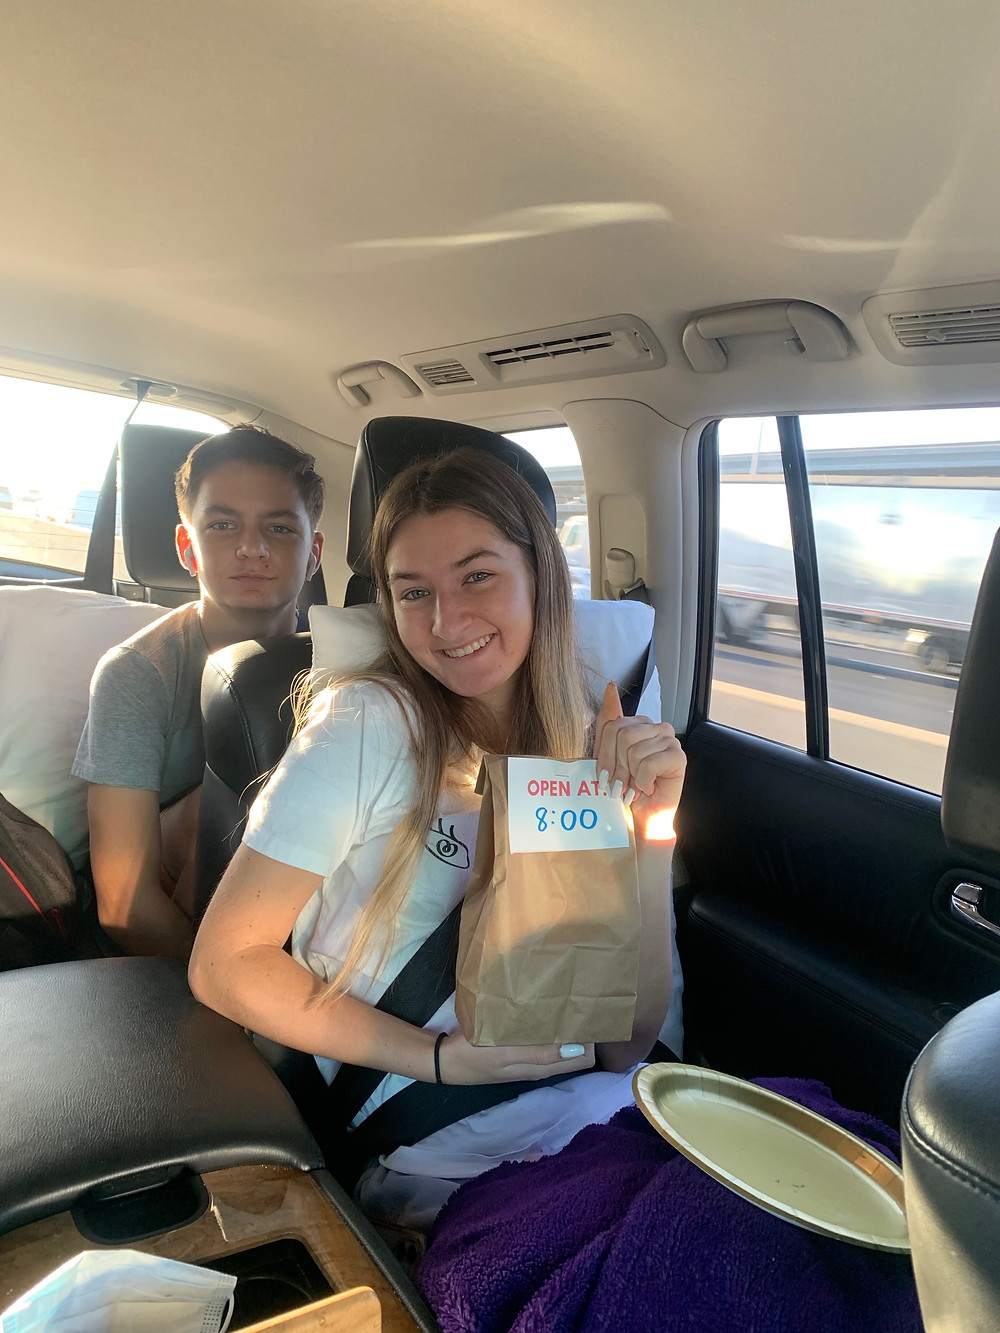 Kids in car for road trip with travel goodie bag